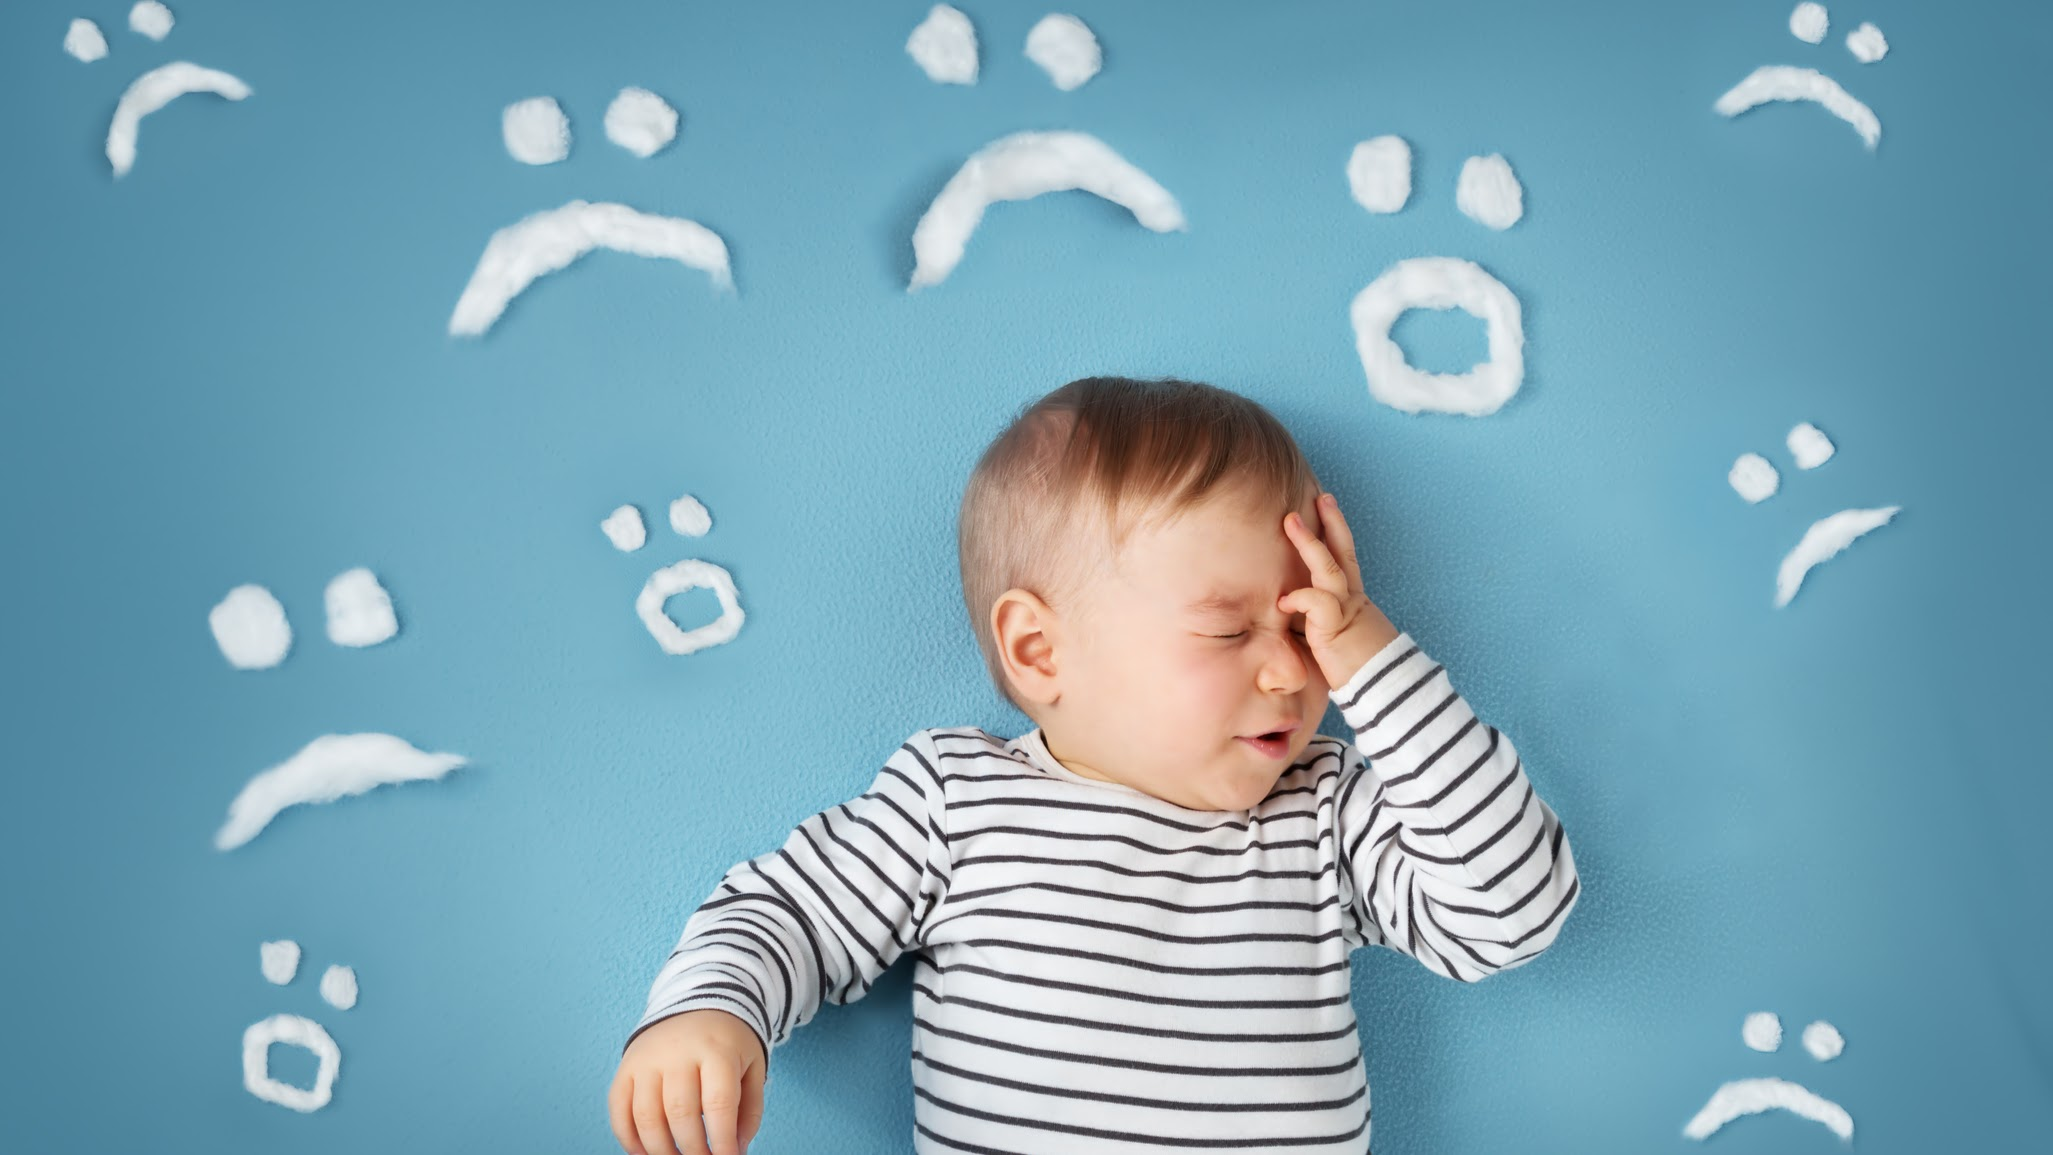 uhappy little boy on blue blanket background with sad smiley faces